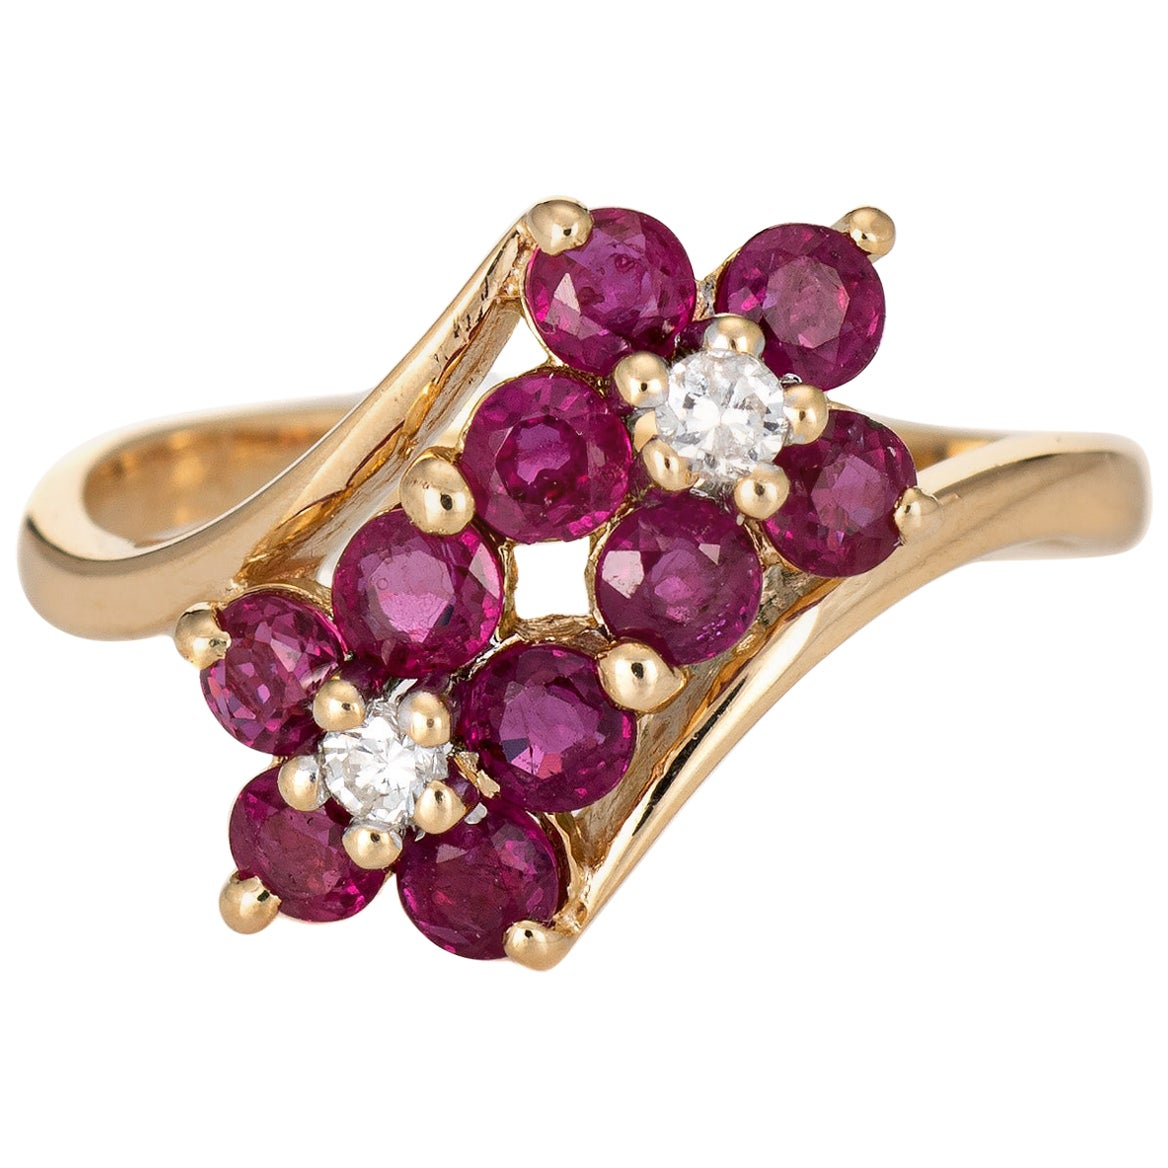 Ruby Diamond Double Flower Ring Moi et Toi 14 Karat Yellow Gold Vintage Jewelry